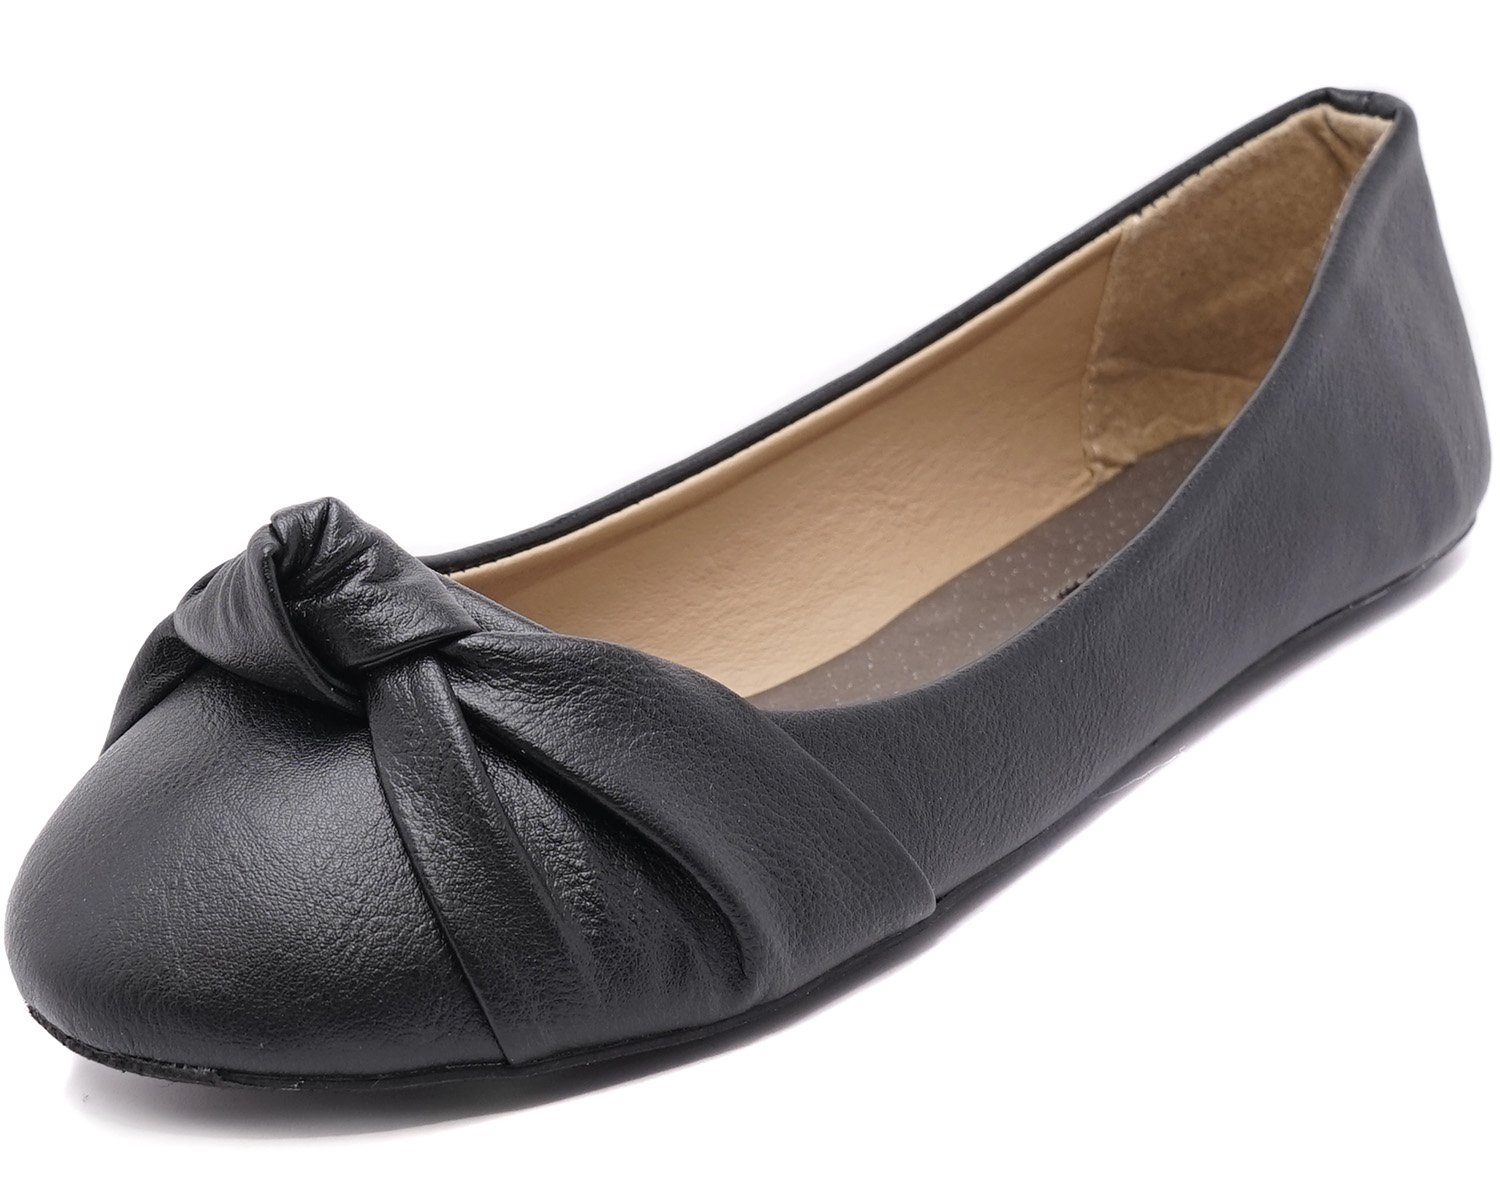 Charles Albert Women's Knotted Front Loafer Leather Round Toe Ballet Flats (8, Black PU)